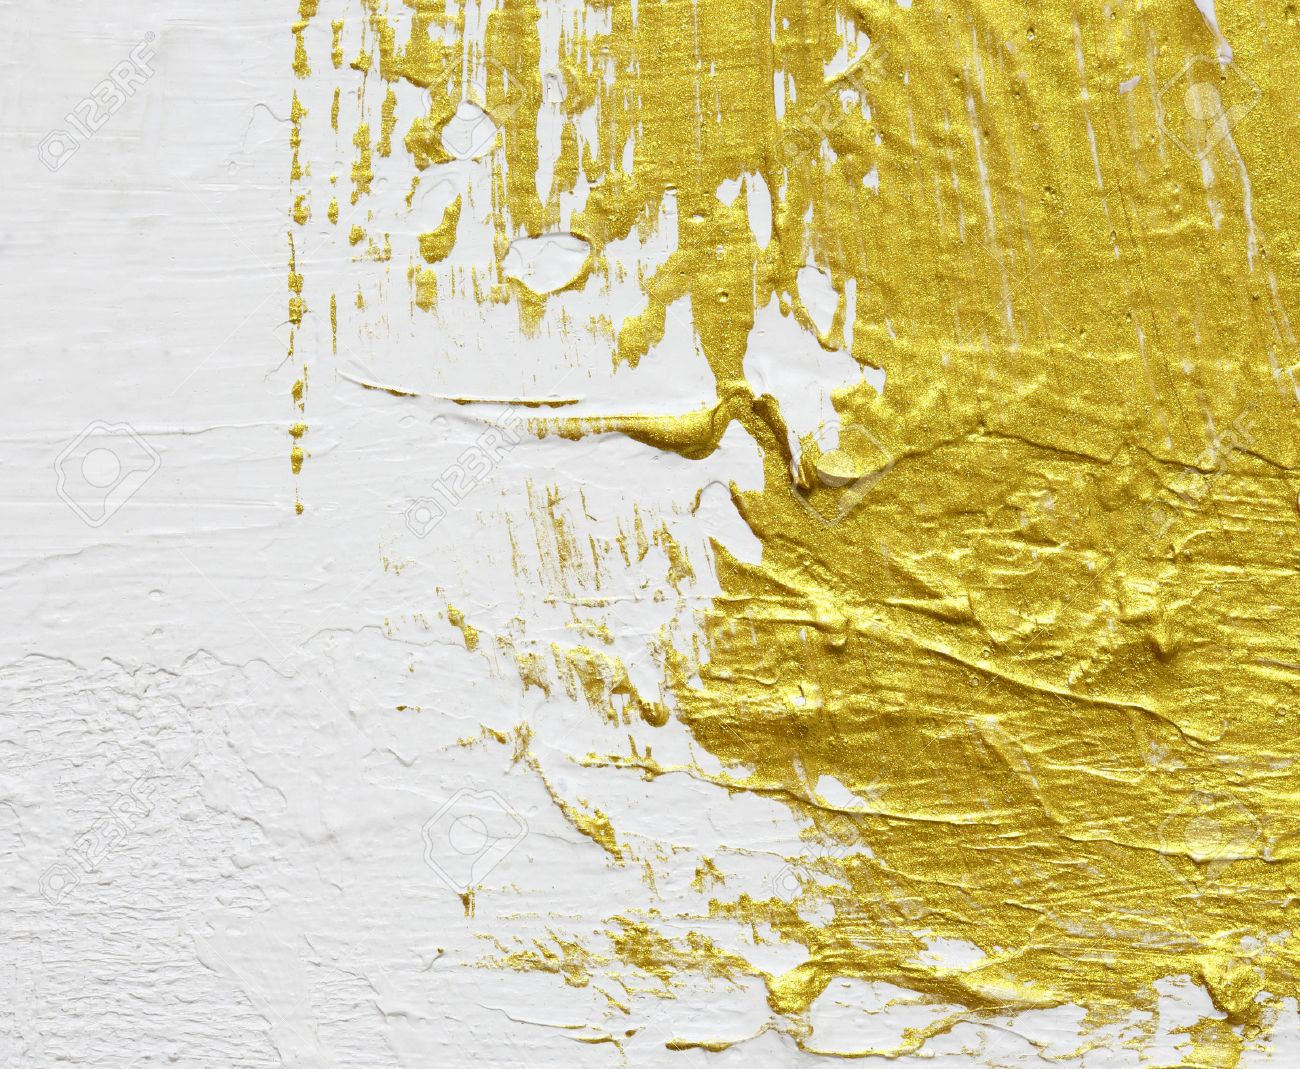 dc9e920f9d4 gold textured abstract painting on white background Stock Photo - 53347124